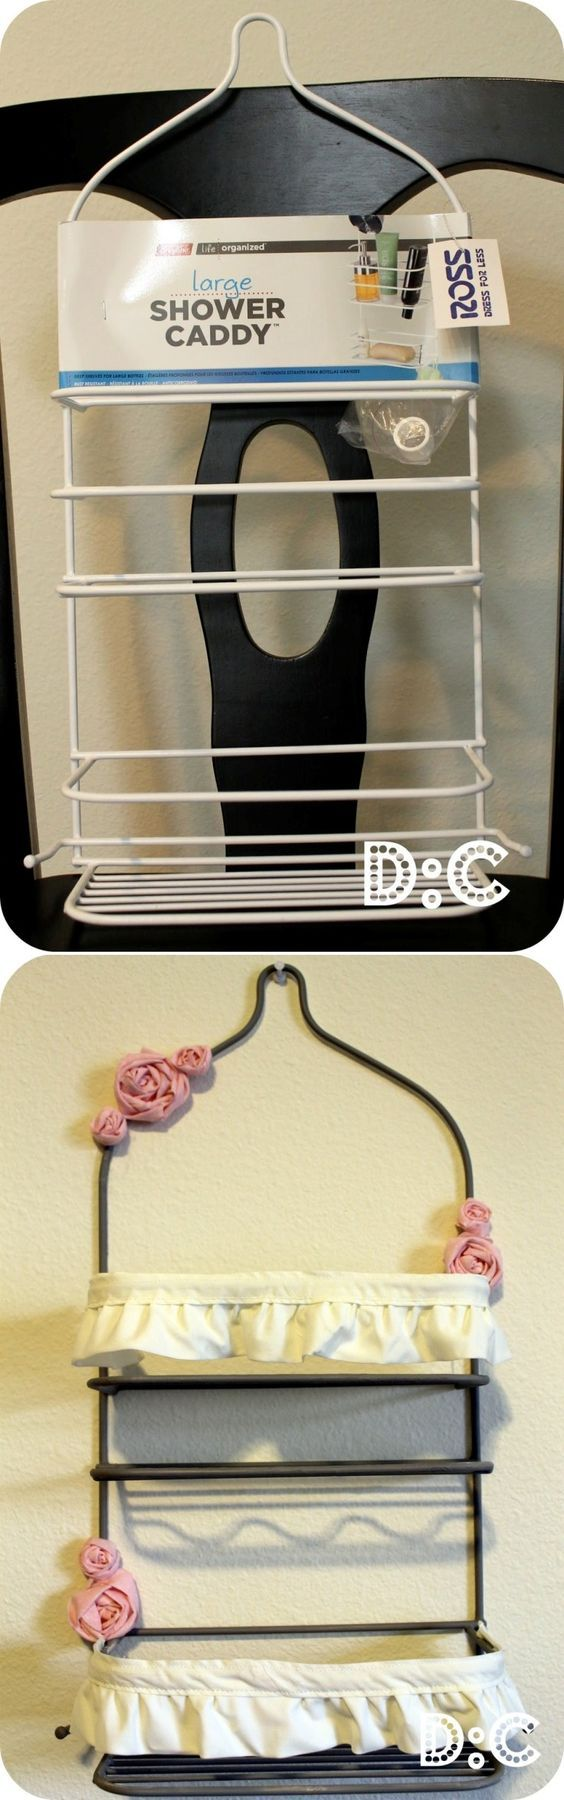 Rossette Shower Caddy Storage. This would be cute for mail or books!